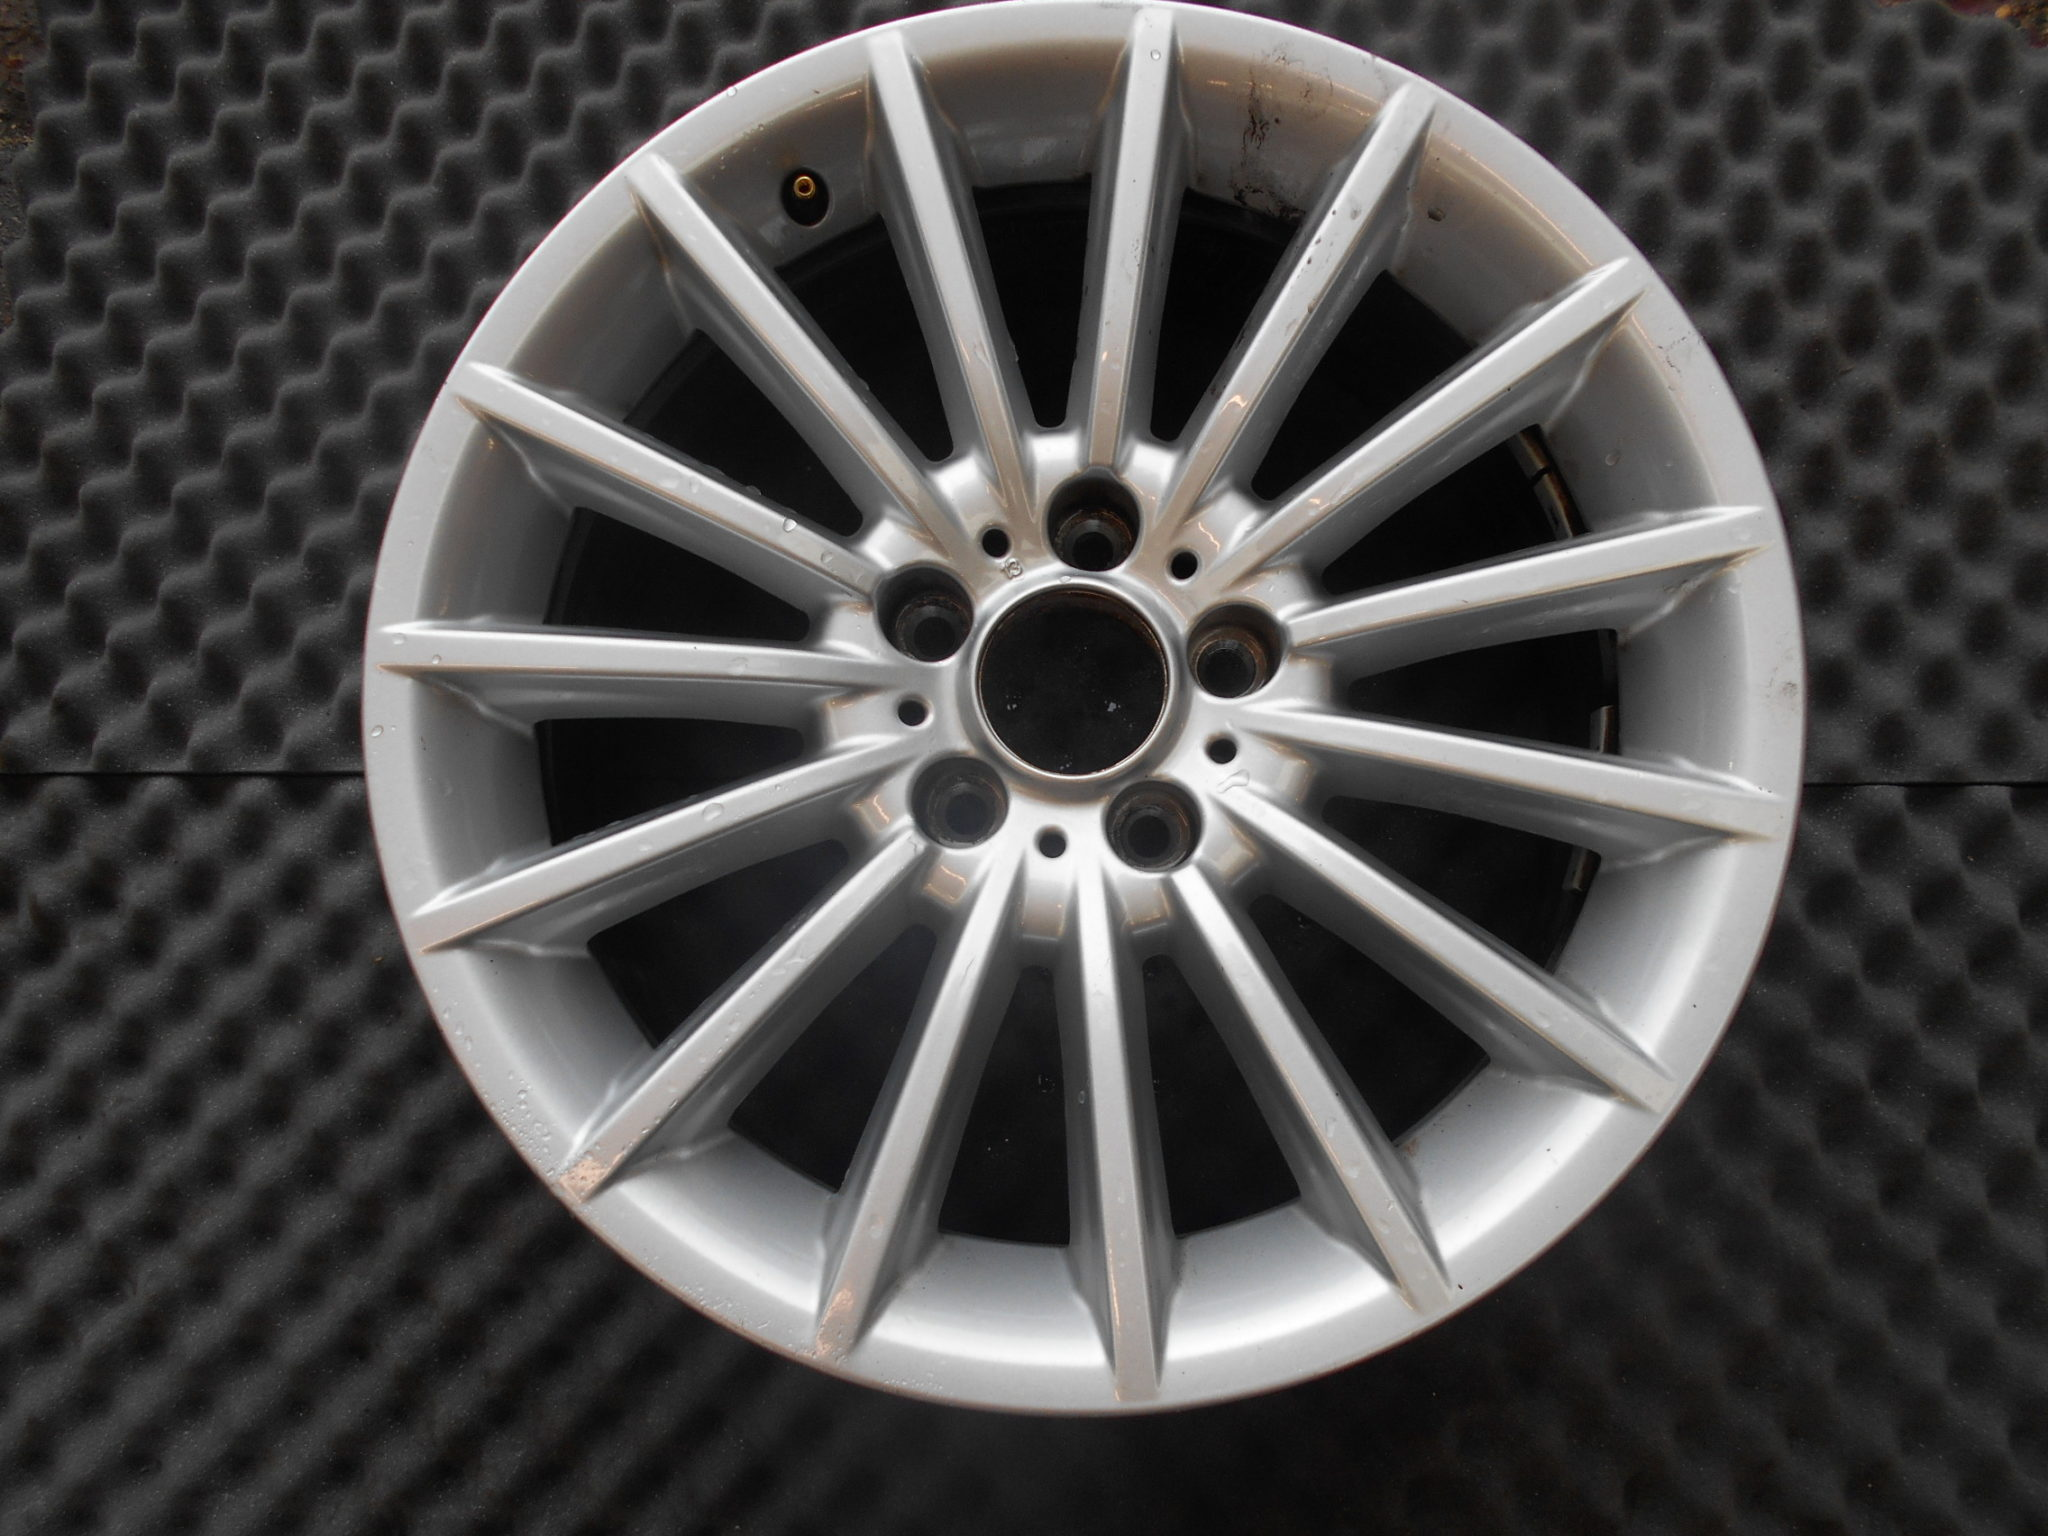 18 Genuine Bmw Style 237 Alloy Wheel Performance Wheels And Tyres